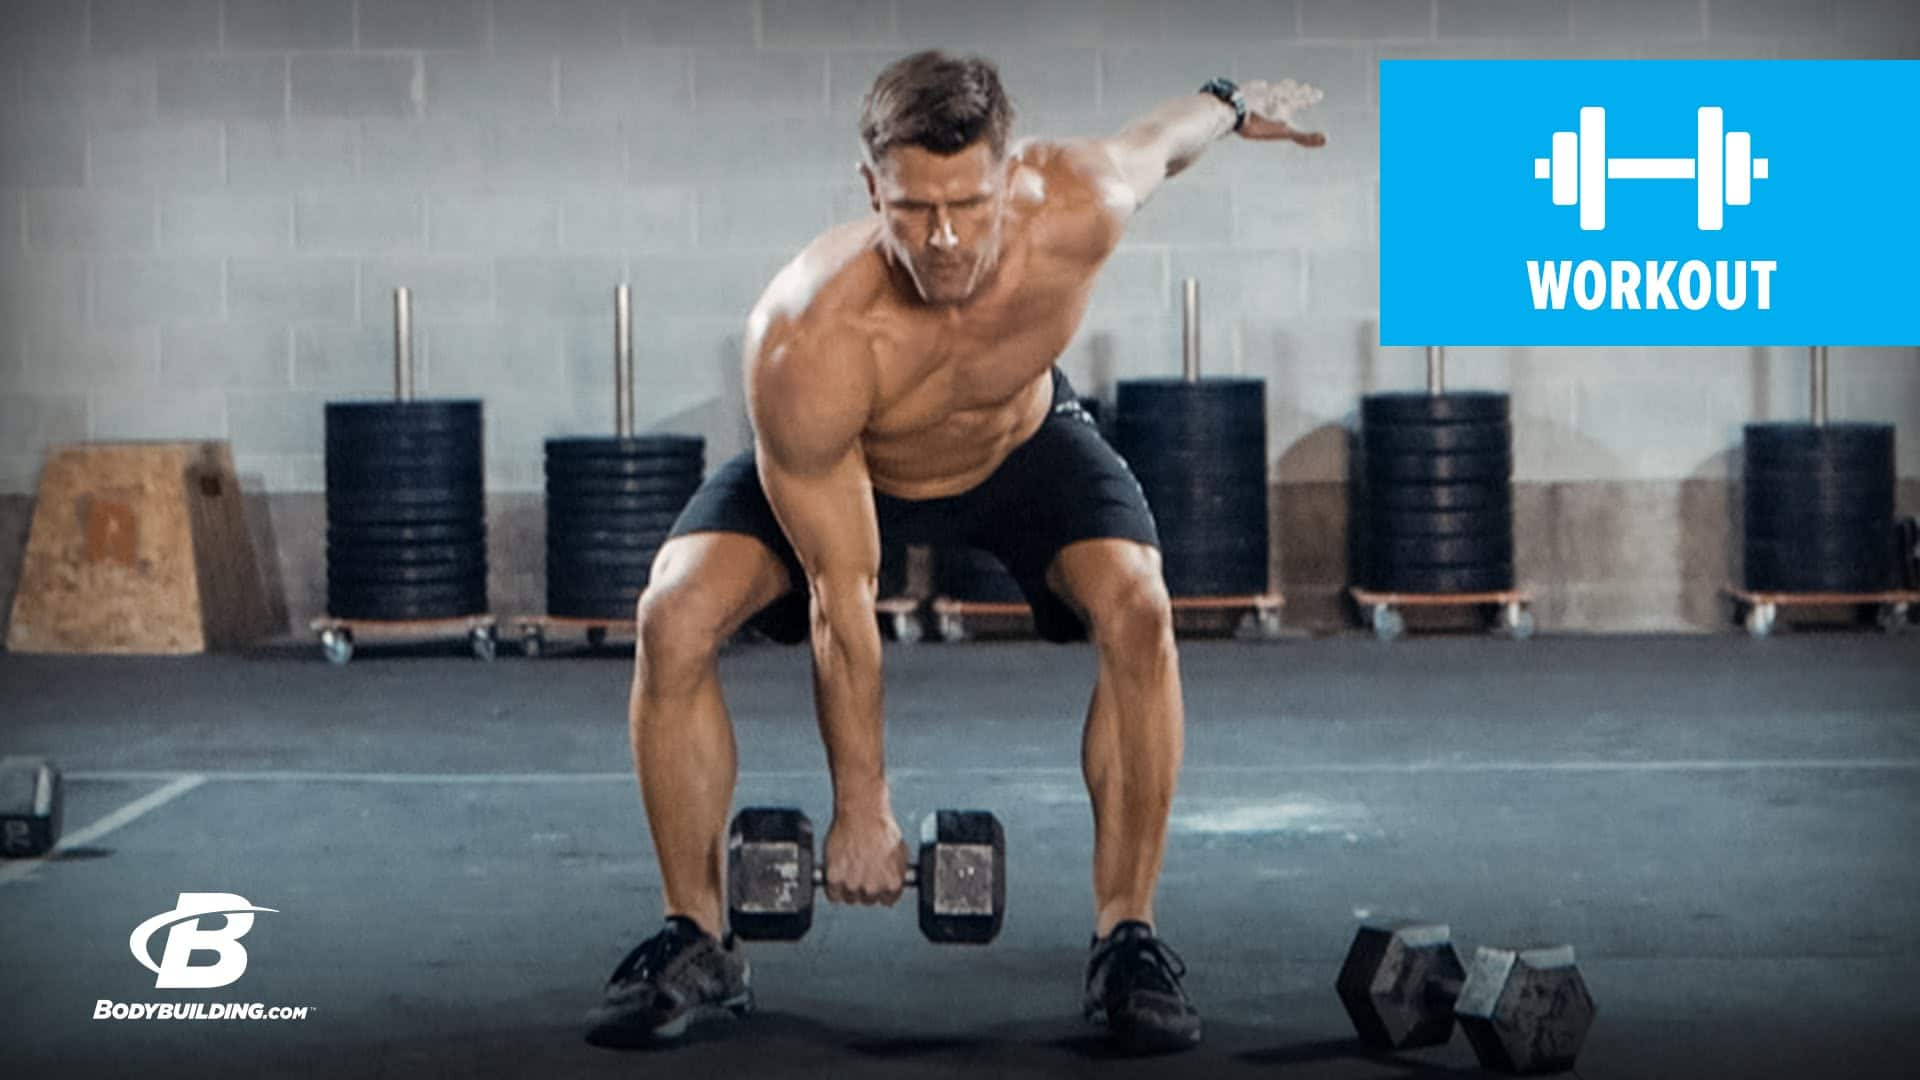 Communication on this topic: Video: Dumbbell Workout Routines, video-dumbbell-workout-routines/